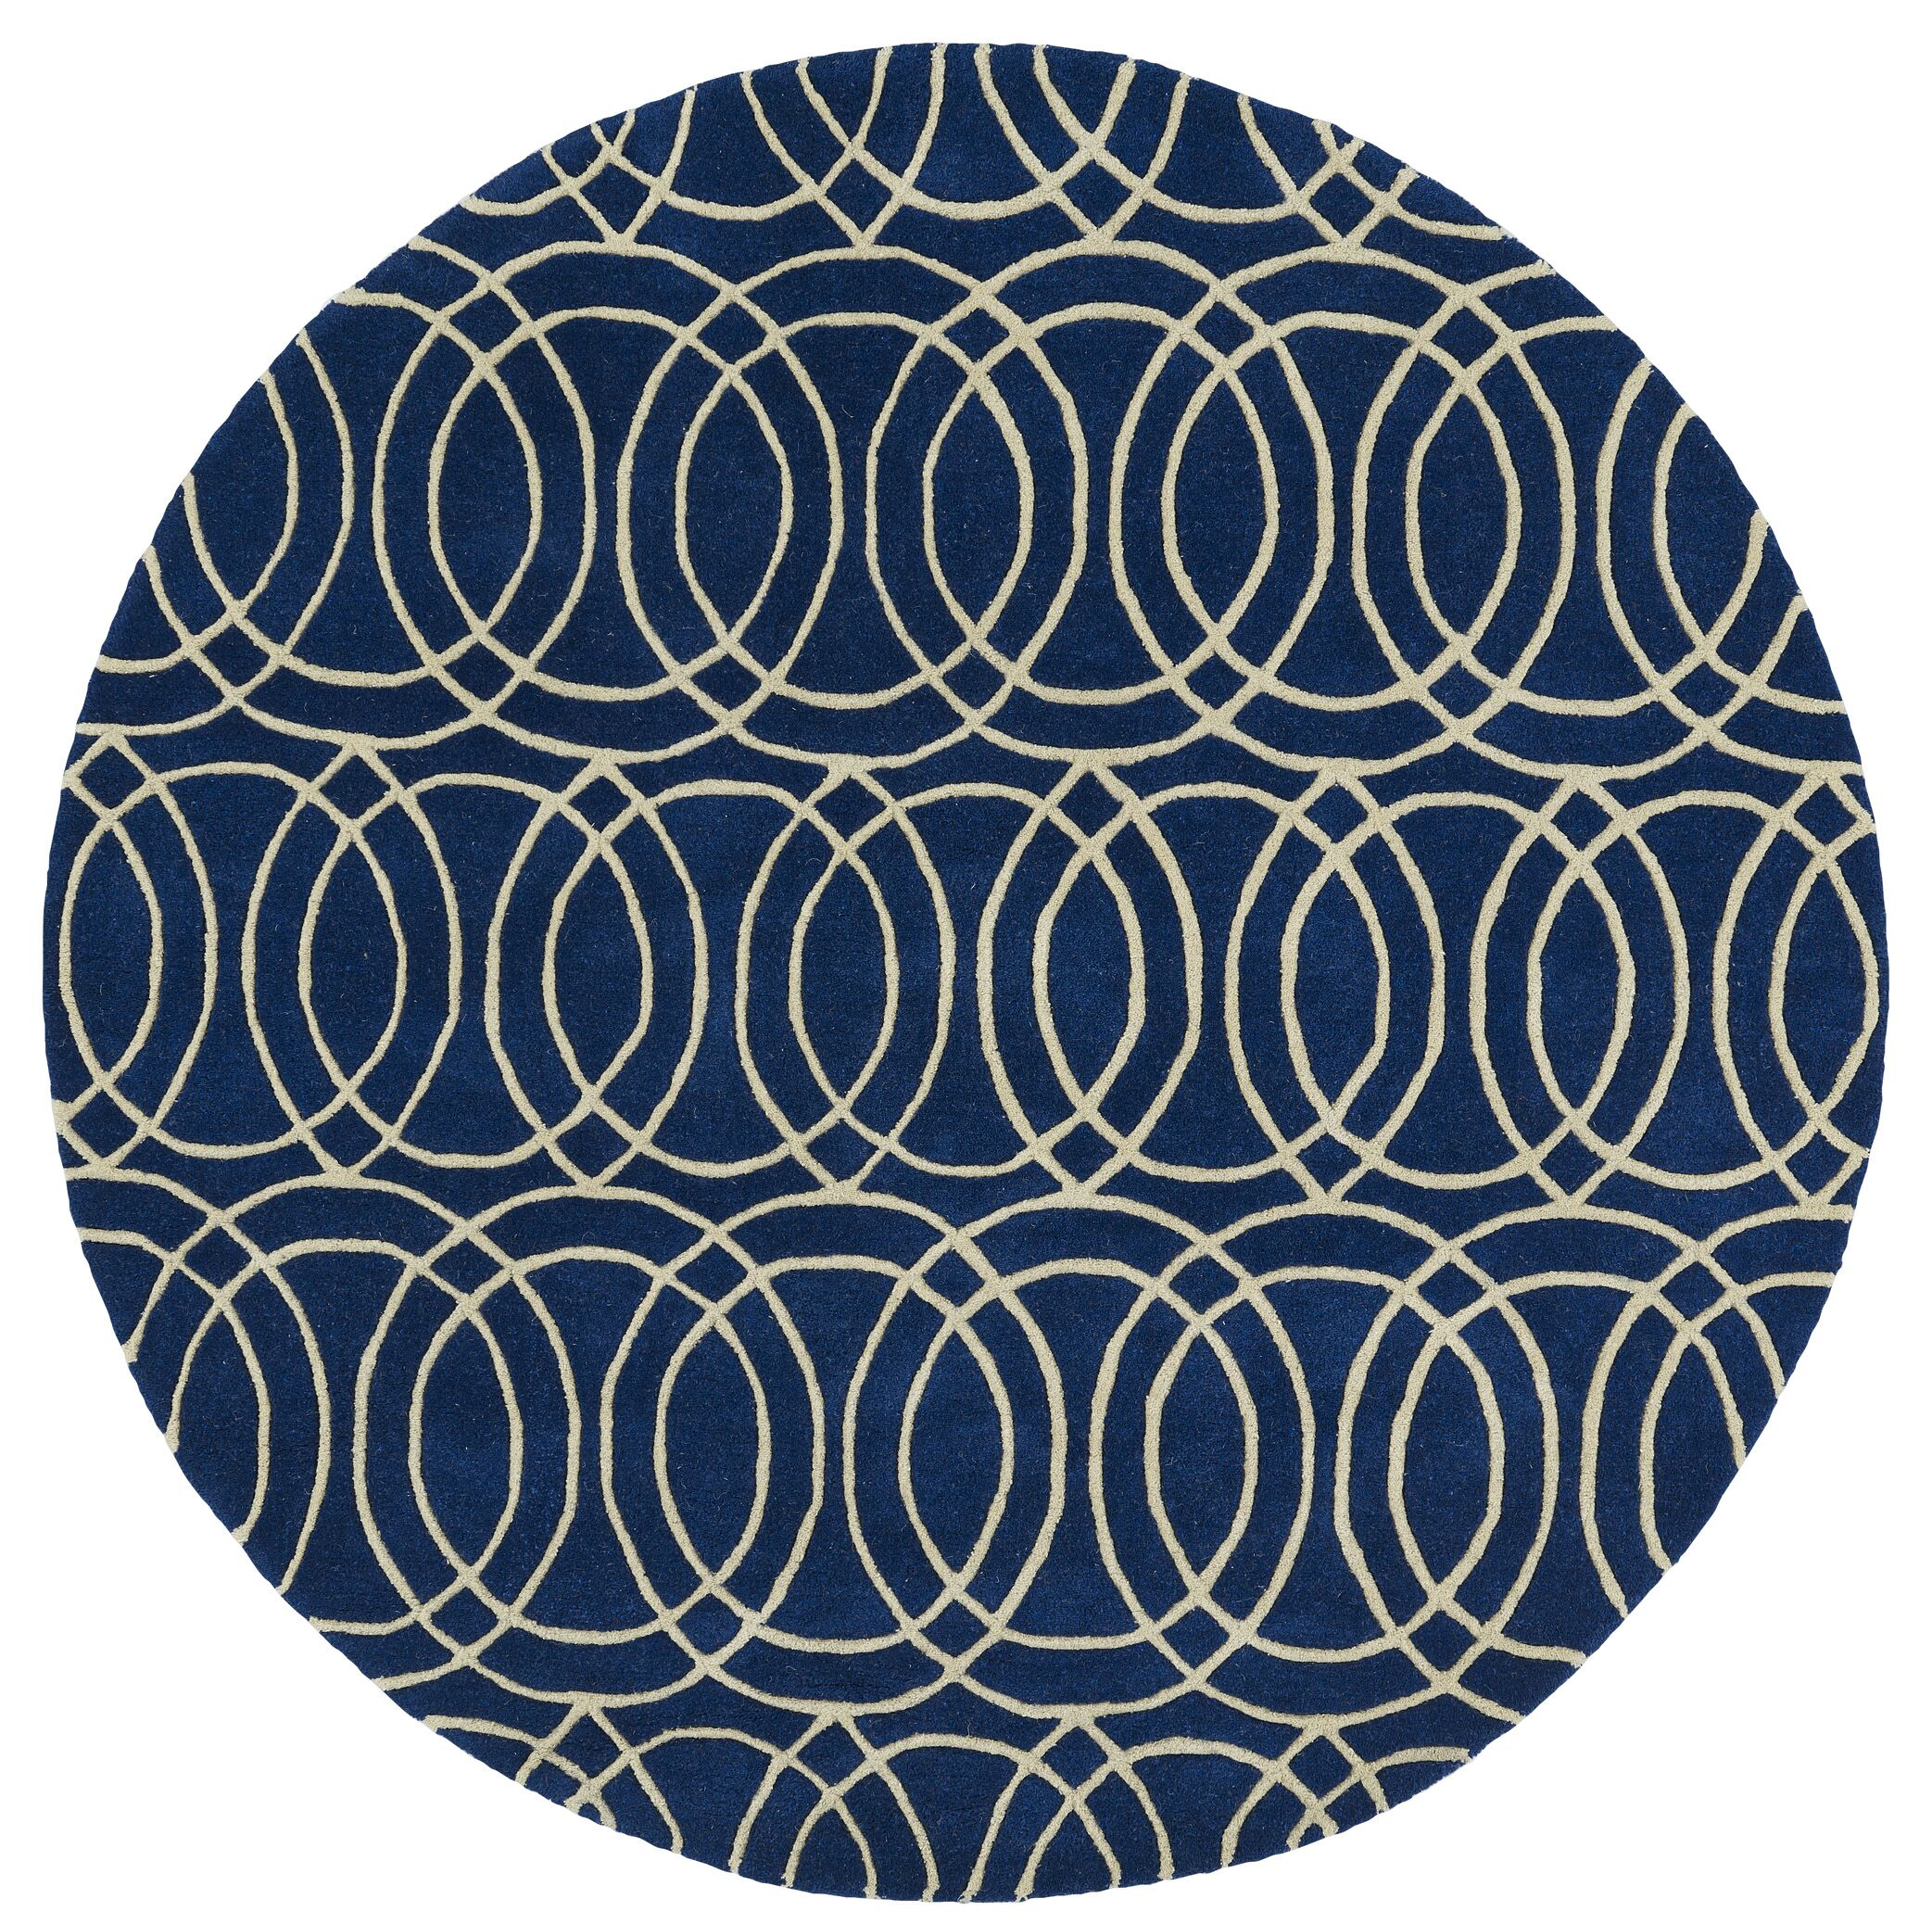 Molly Hand-Tufted Navy / Ivory Area Rug Rug Size: Round 7'9